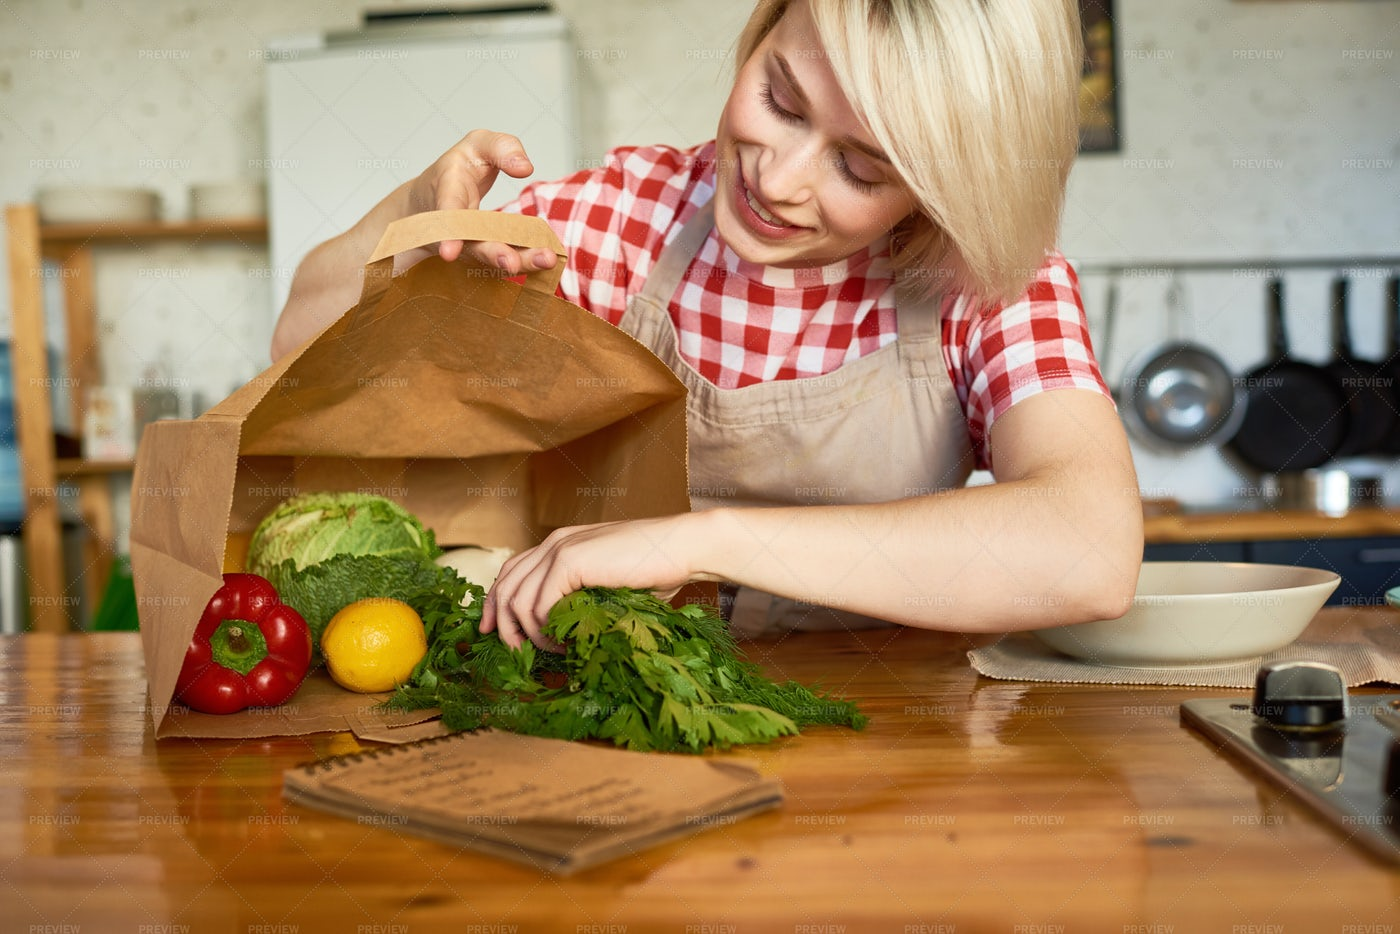 Pretty Housewife In Cozy Kitchen: Stock Photos